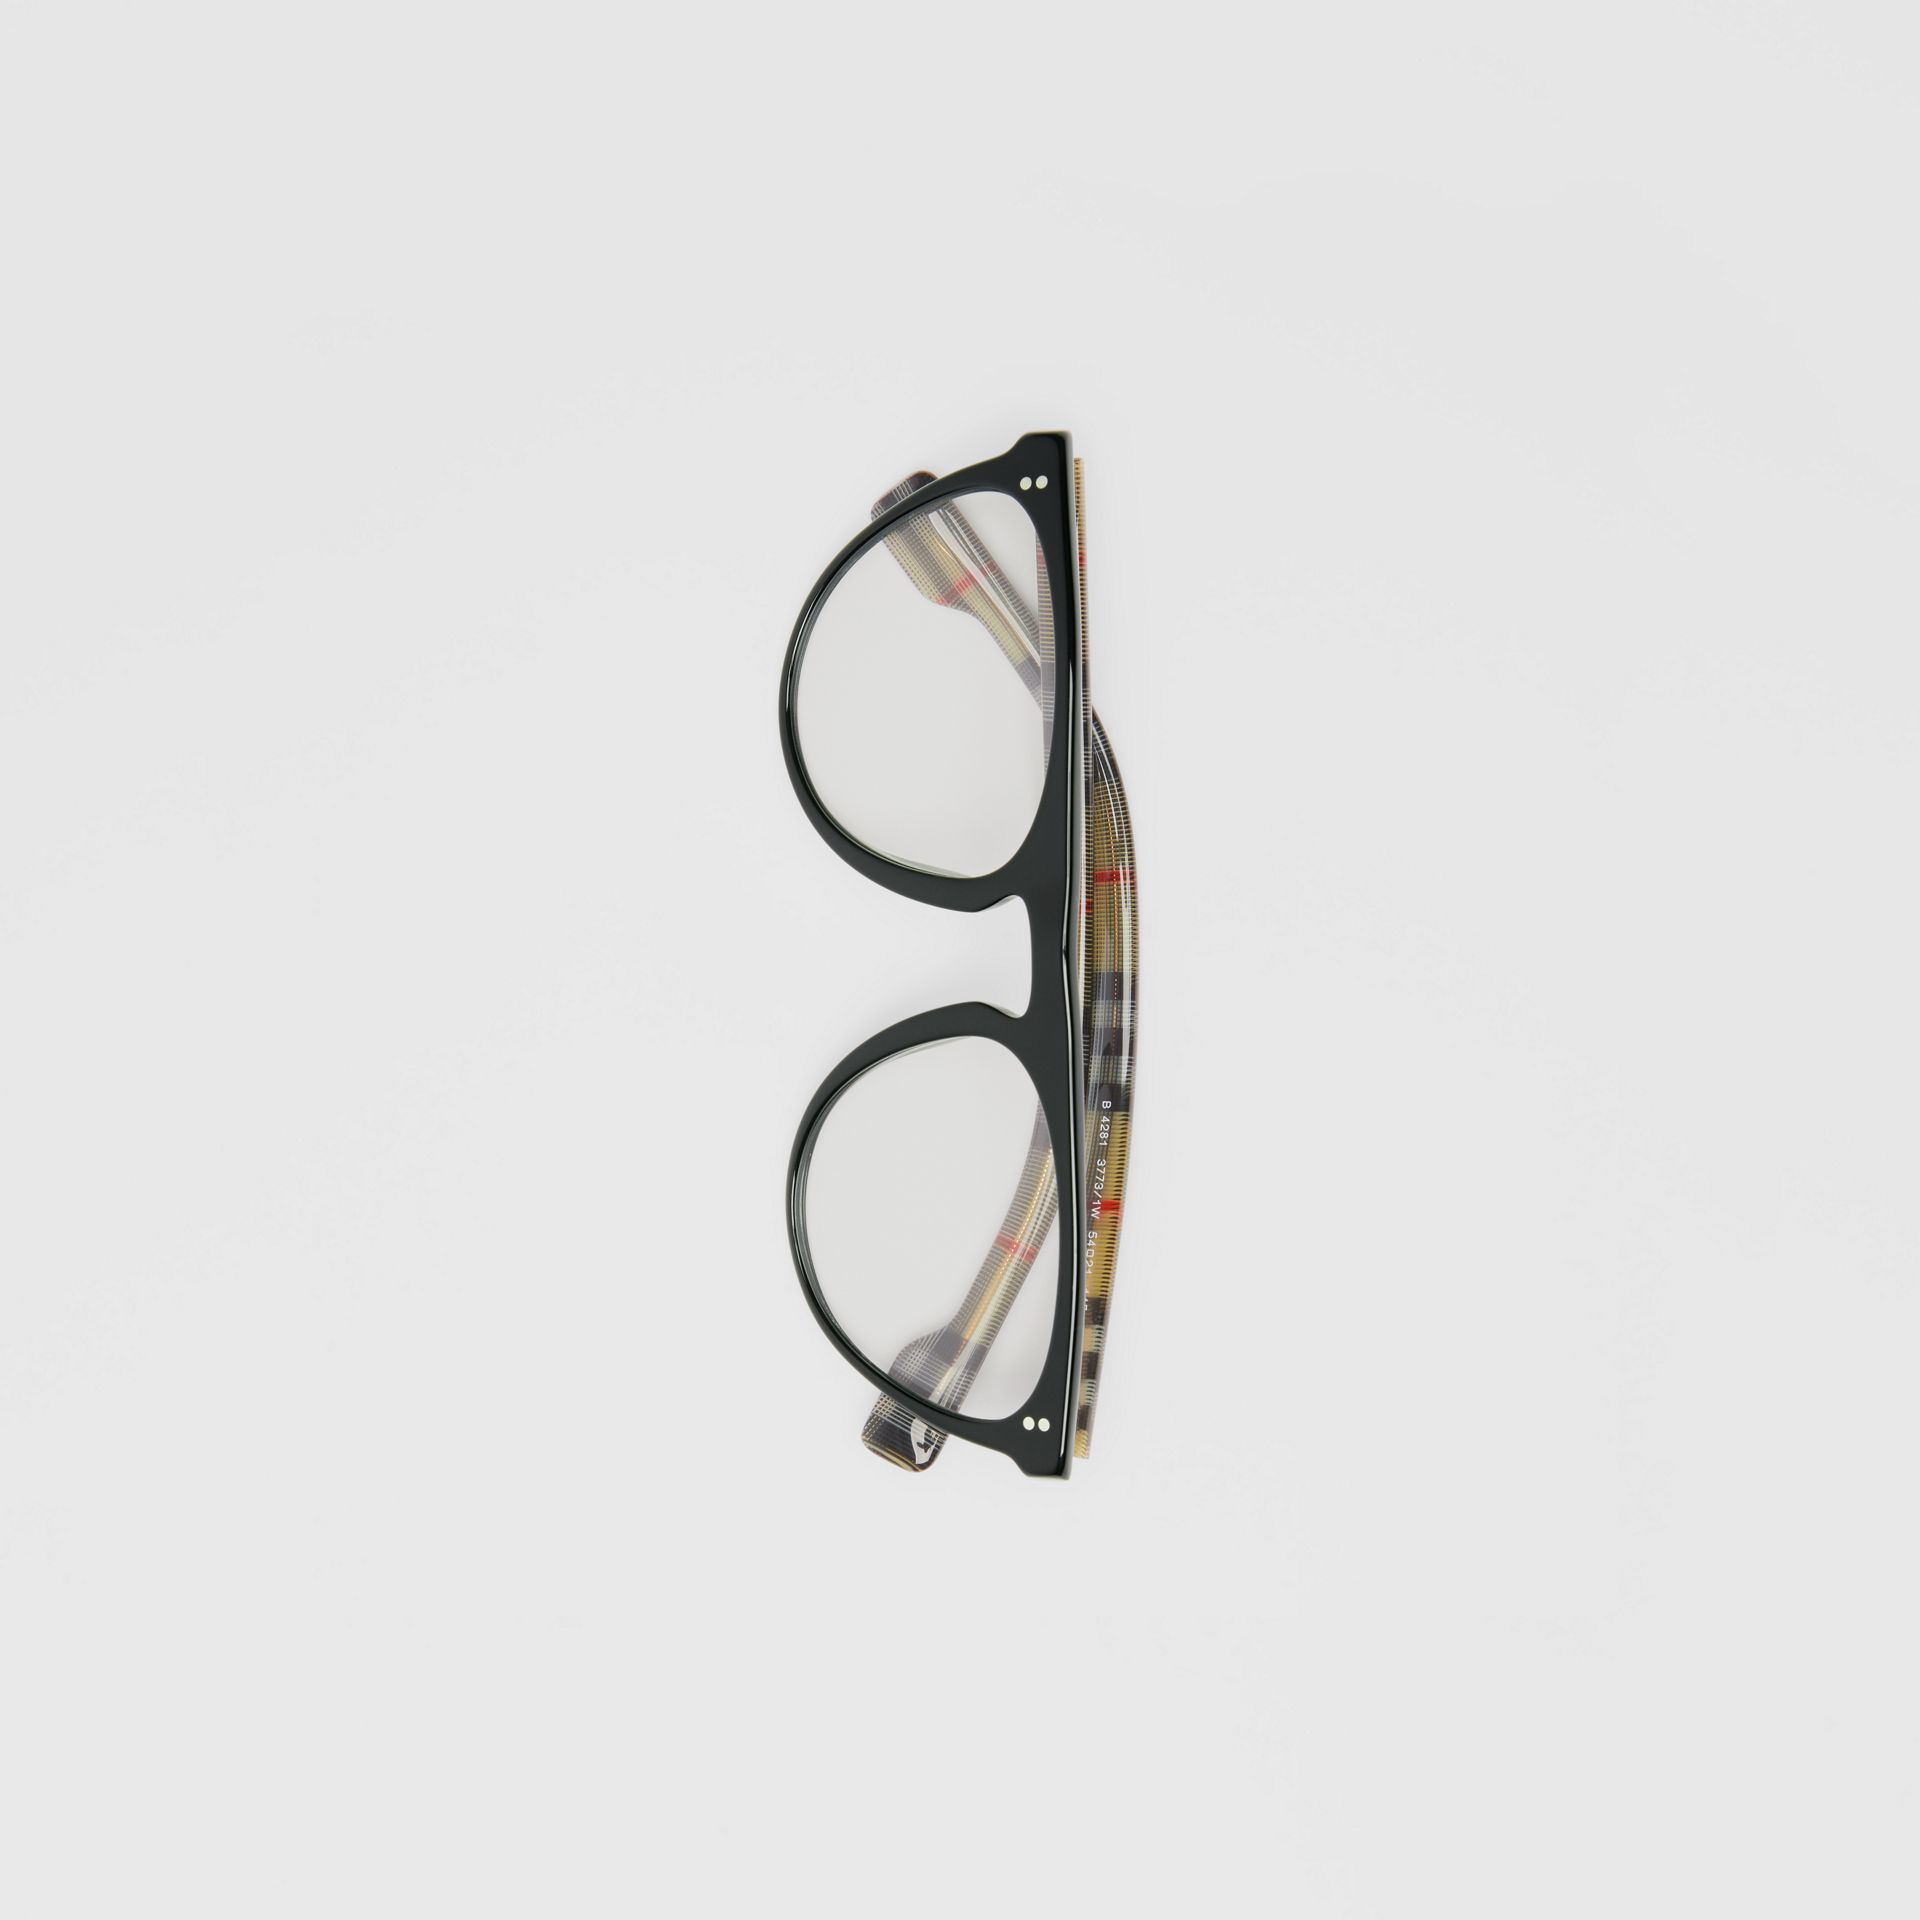 Keyhole D-shaped Optical Frames in Black - Men | Burberry Singapore - gallery image 3